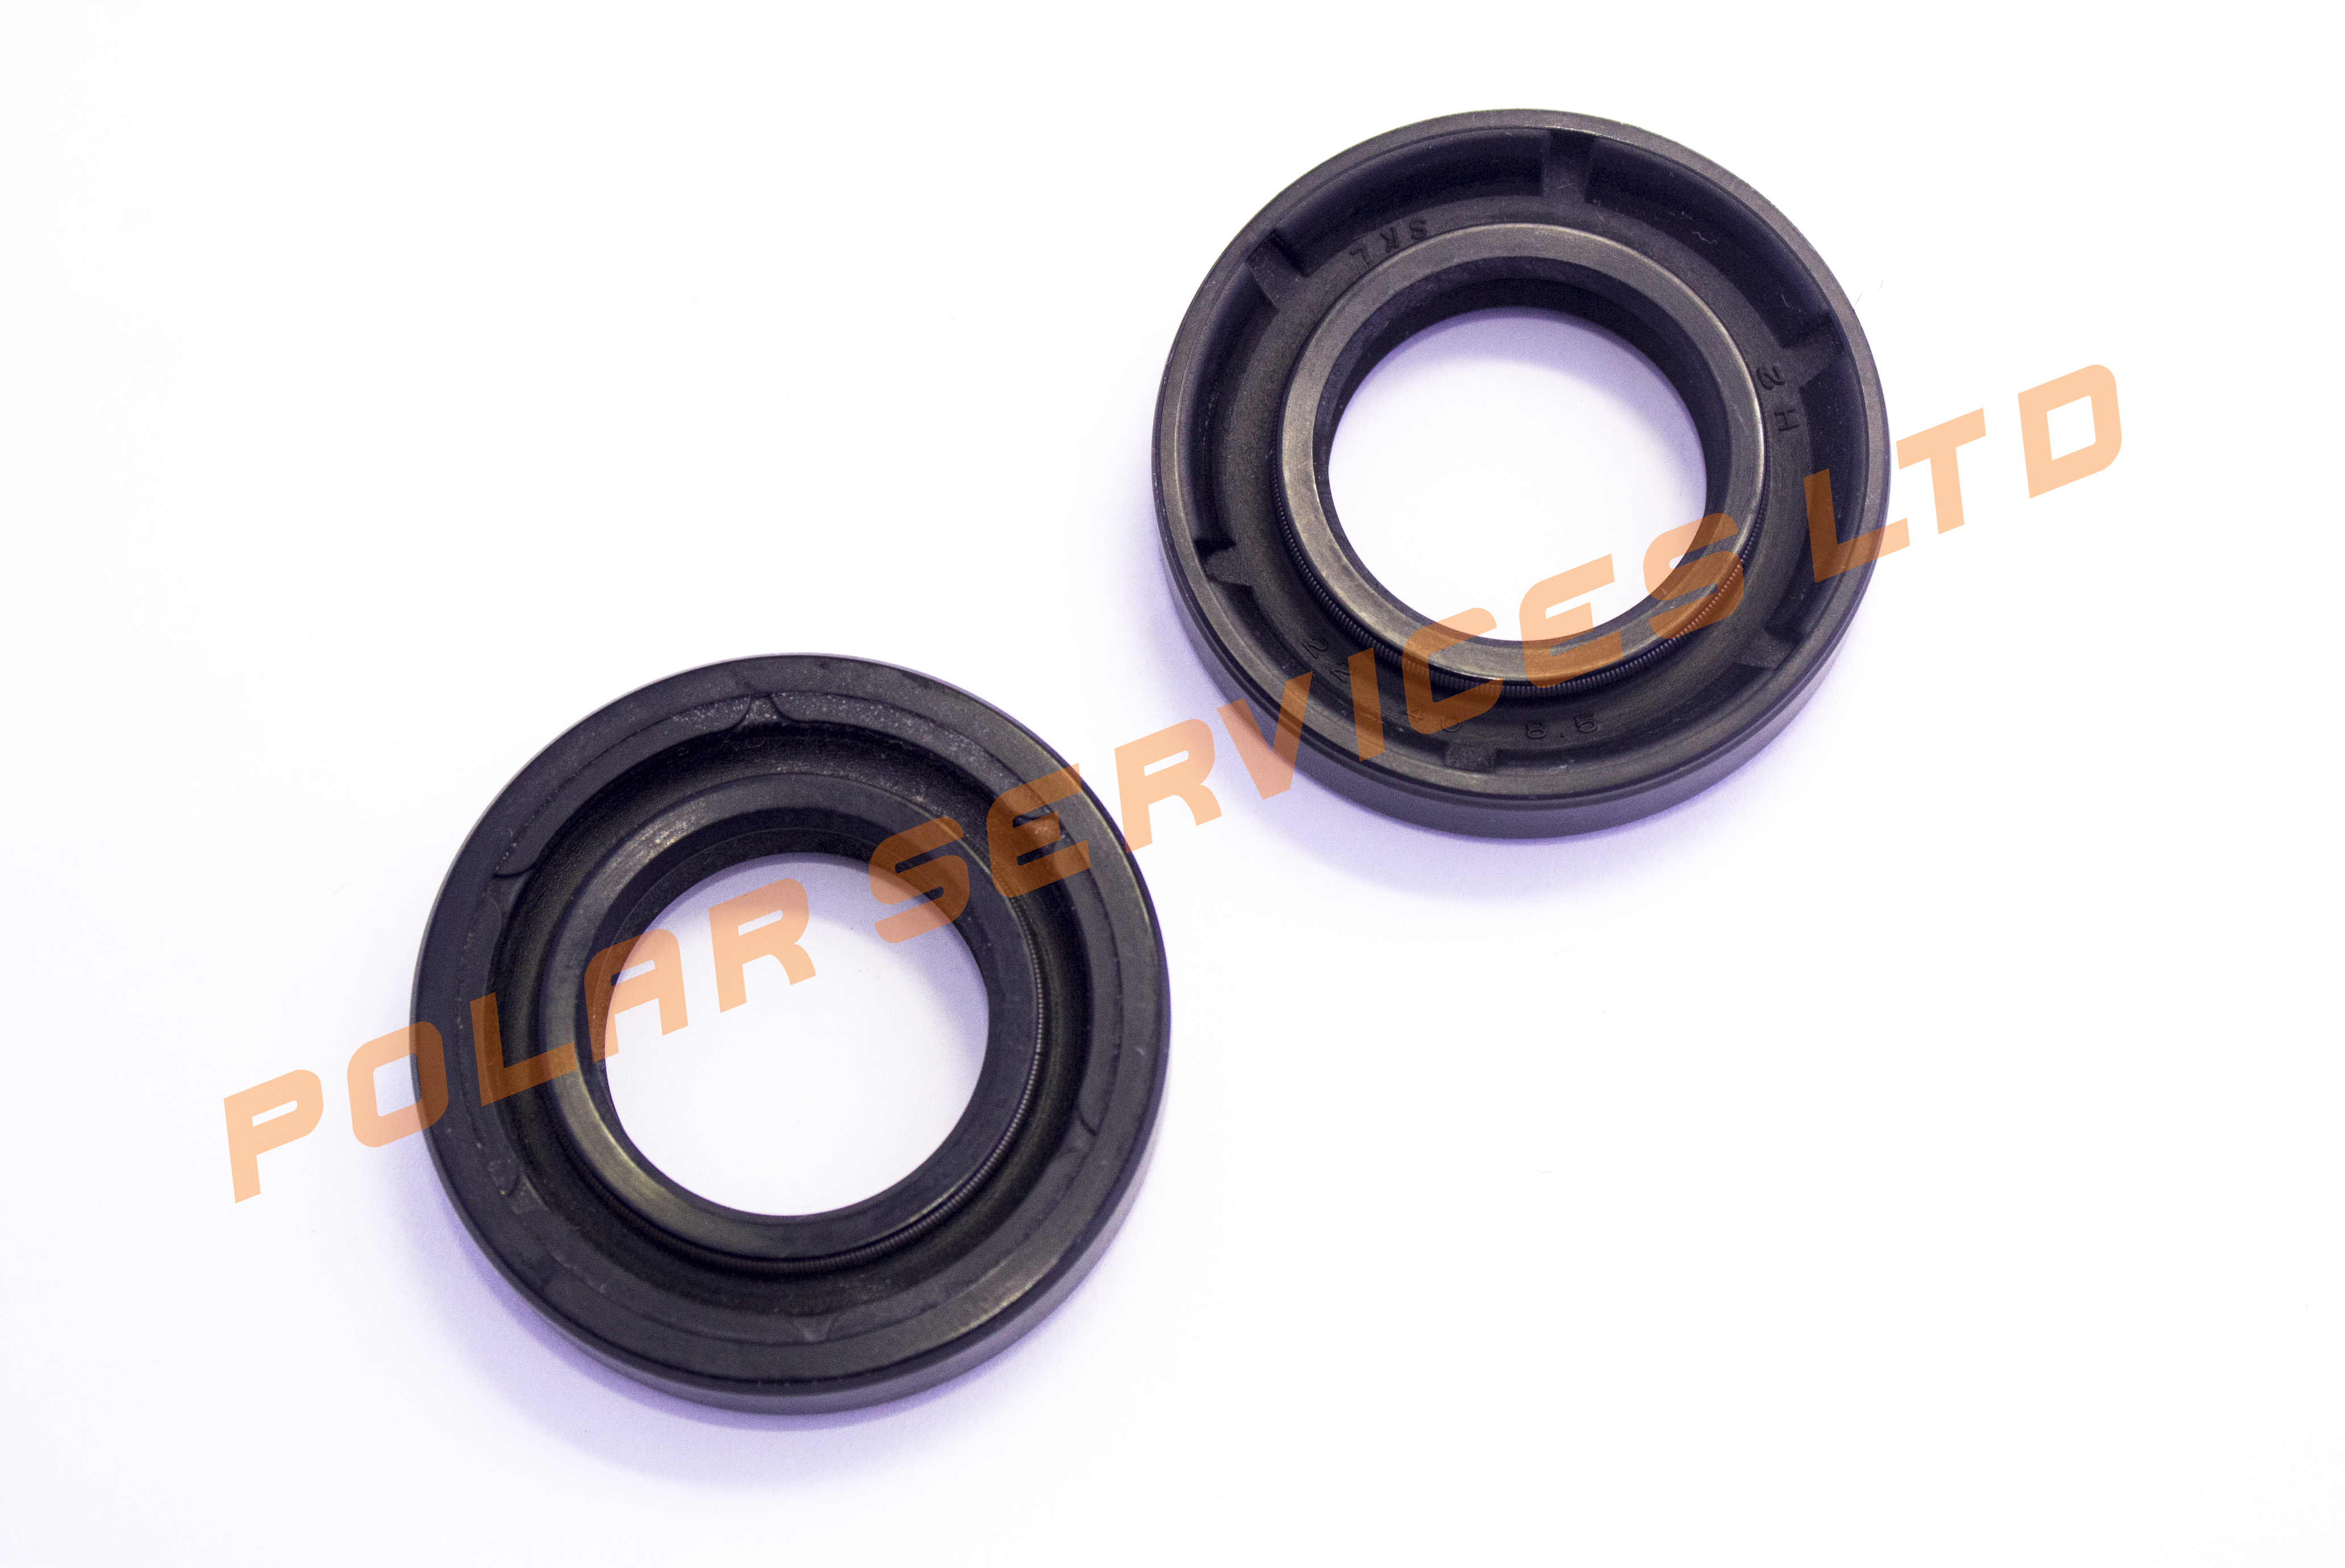 WASHING MACHINE BEARING SEAL 22 X 40 X 8.5 G2 ARDO 033018 Malta, 								Washing Machine Malta, Polar Services LTD Malta Malta